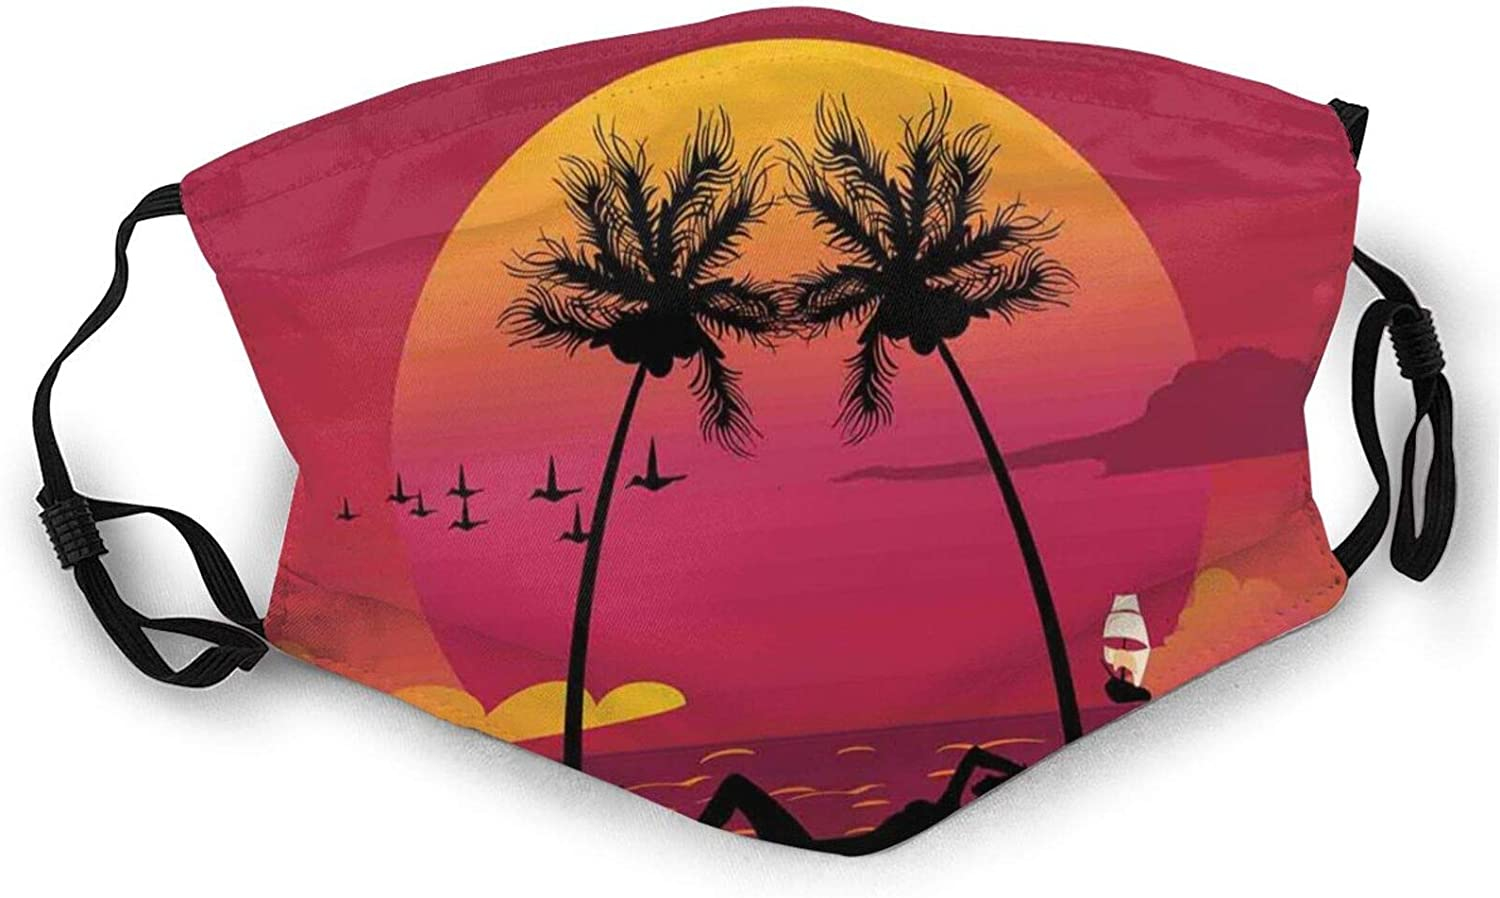 Girl Lying Down in A Hammock Caribbean Coast Relax Vacation Sunset Reusable Face Mask Balaclava Washable Outdoor Nose Mouth Cover for Men and Women Black